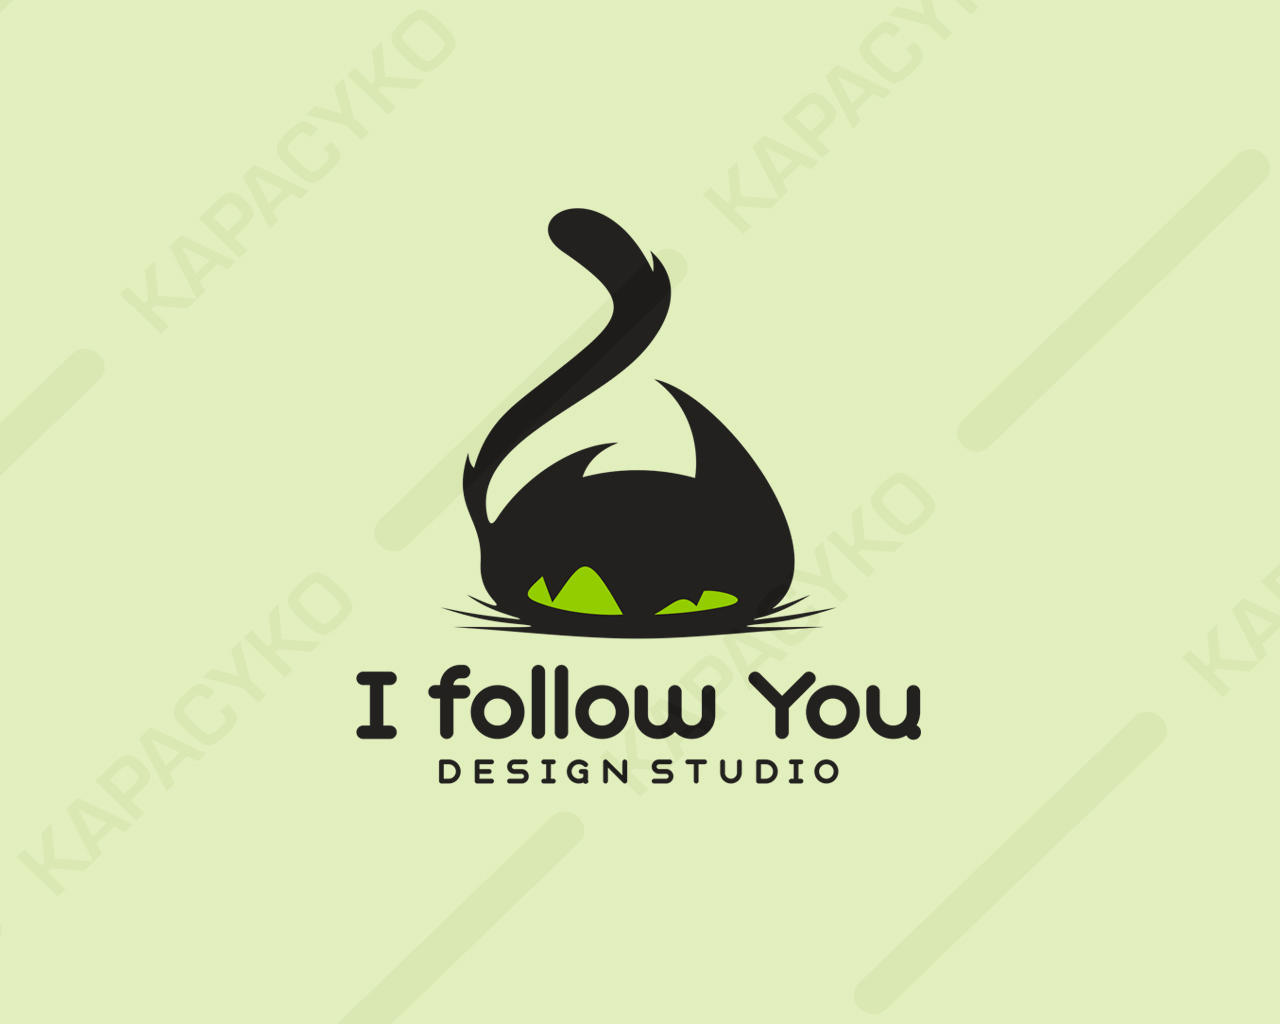 Professional & Creative Logo Design by Kapacyko - 109062